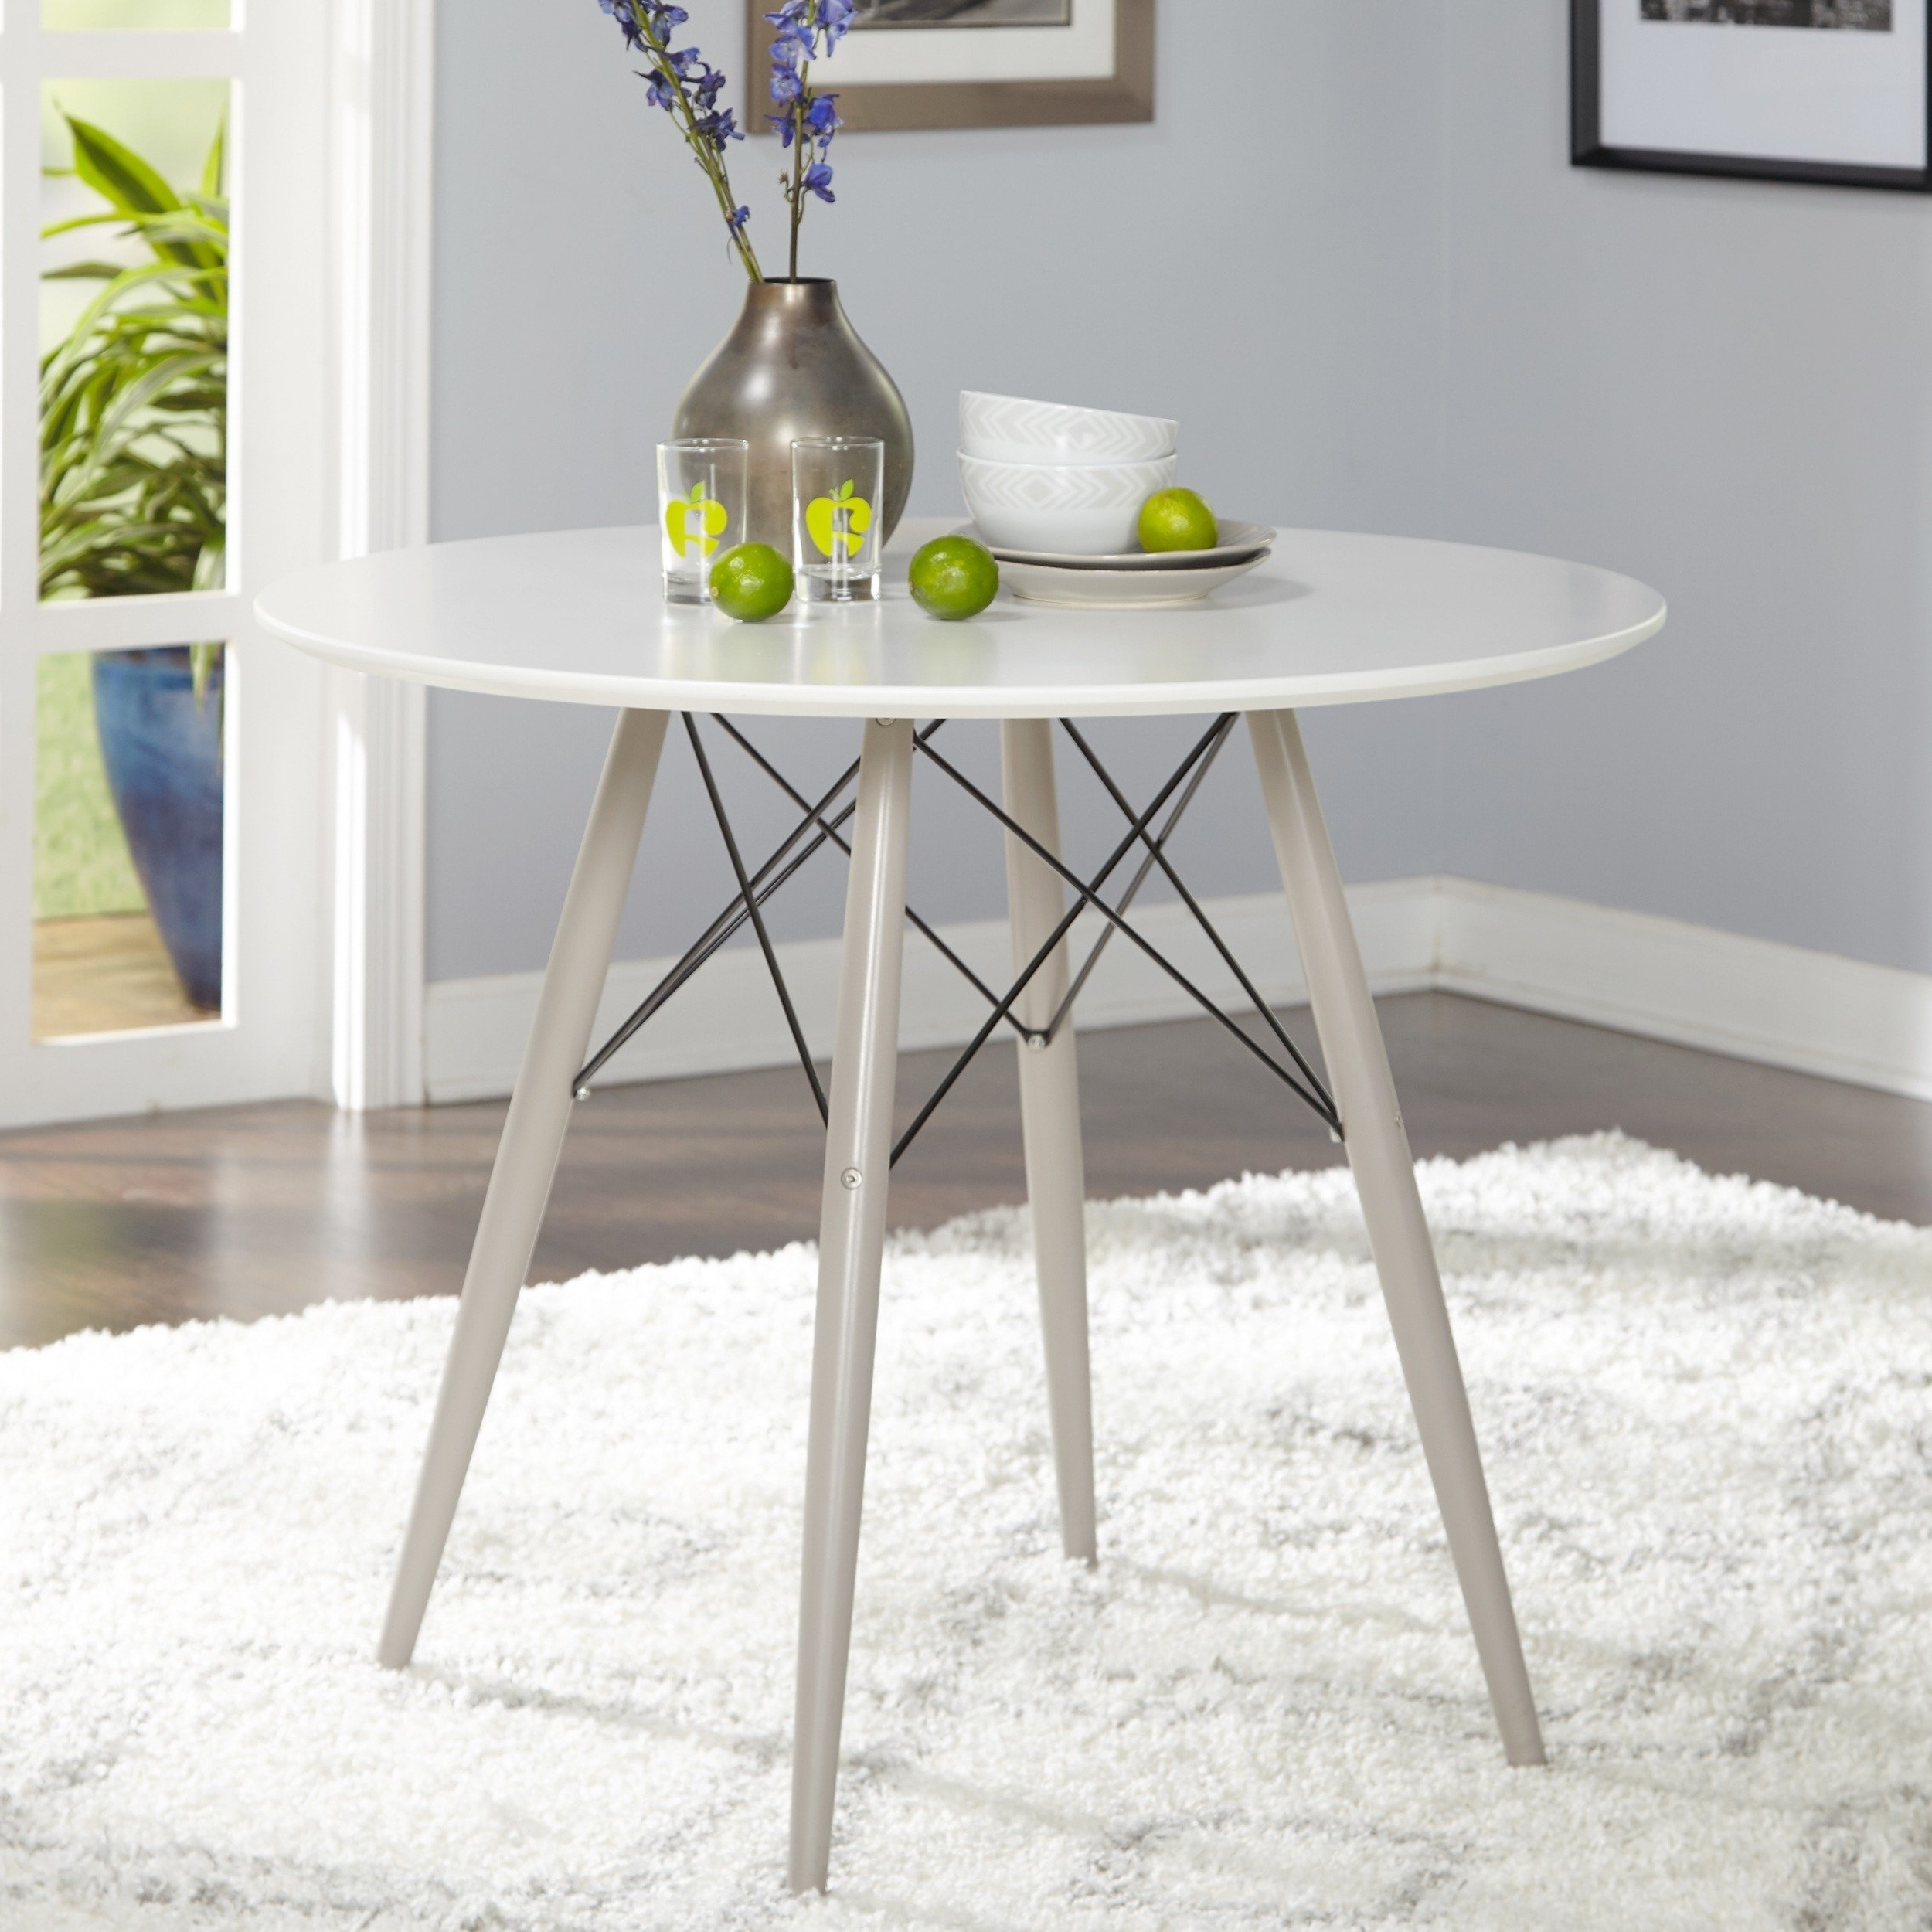 Most Recently Released Elba Ottoman Coffee Tables Intended For Shop Simple Living Elba Mid Century Dining Table – N/a – On Sale (View 11 of 20)